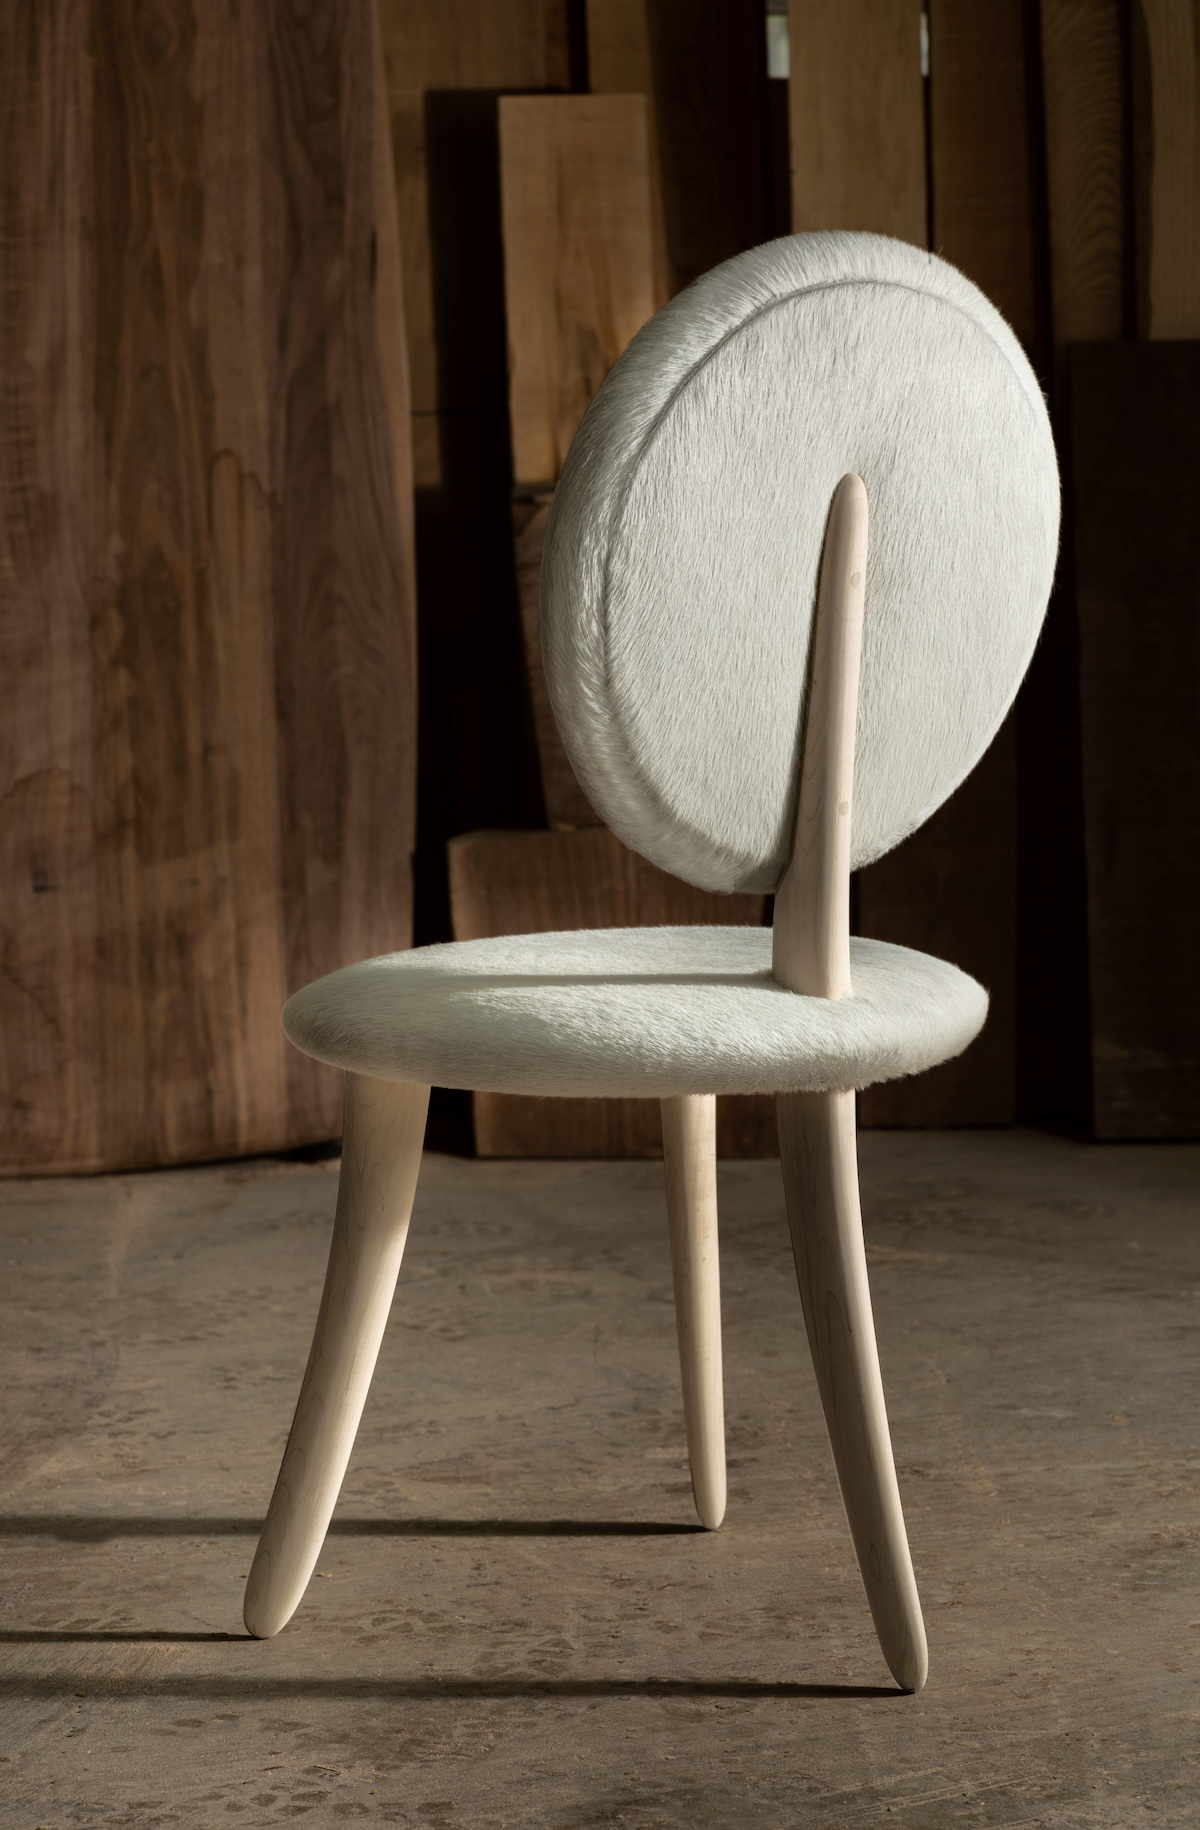 back view of the Willa's Chair by artist Christopher Kurtz